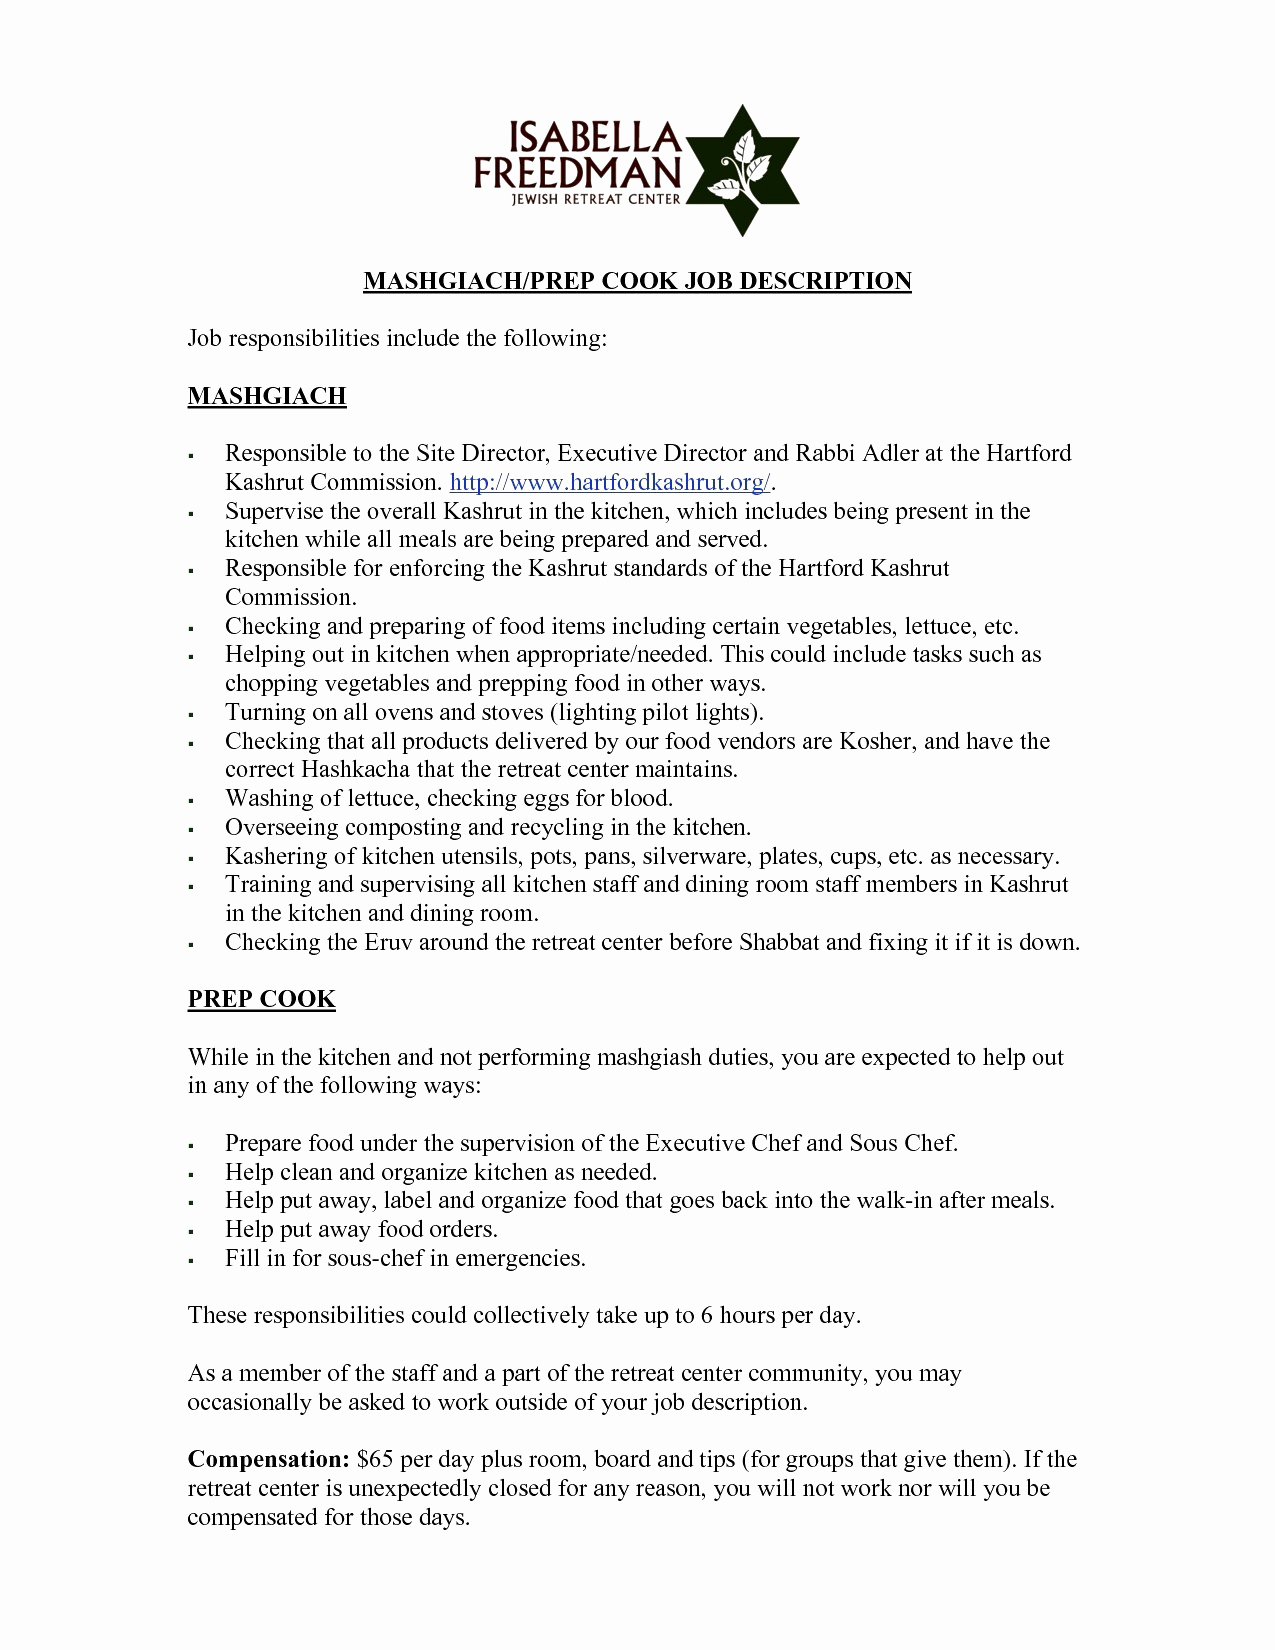 New Board Member orientation Welcome Letter Template - Cover Letter How Long